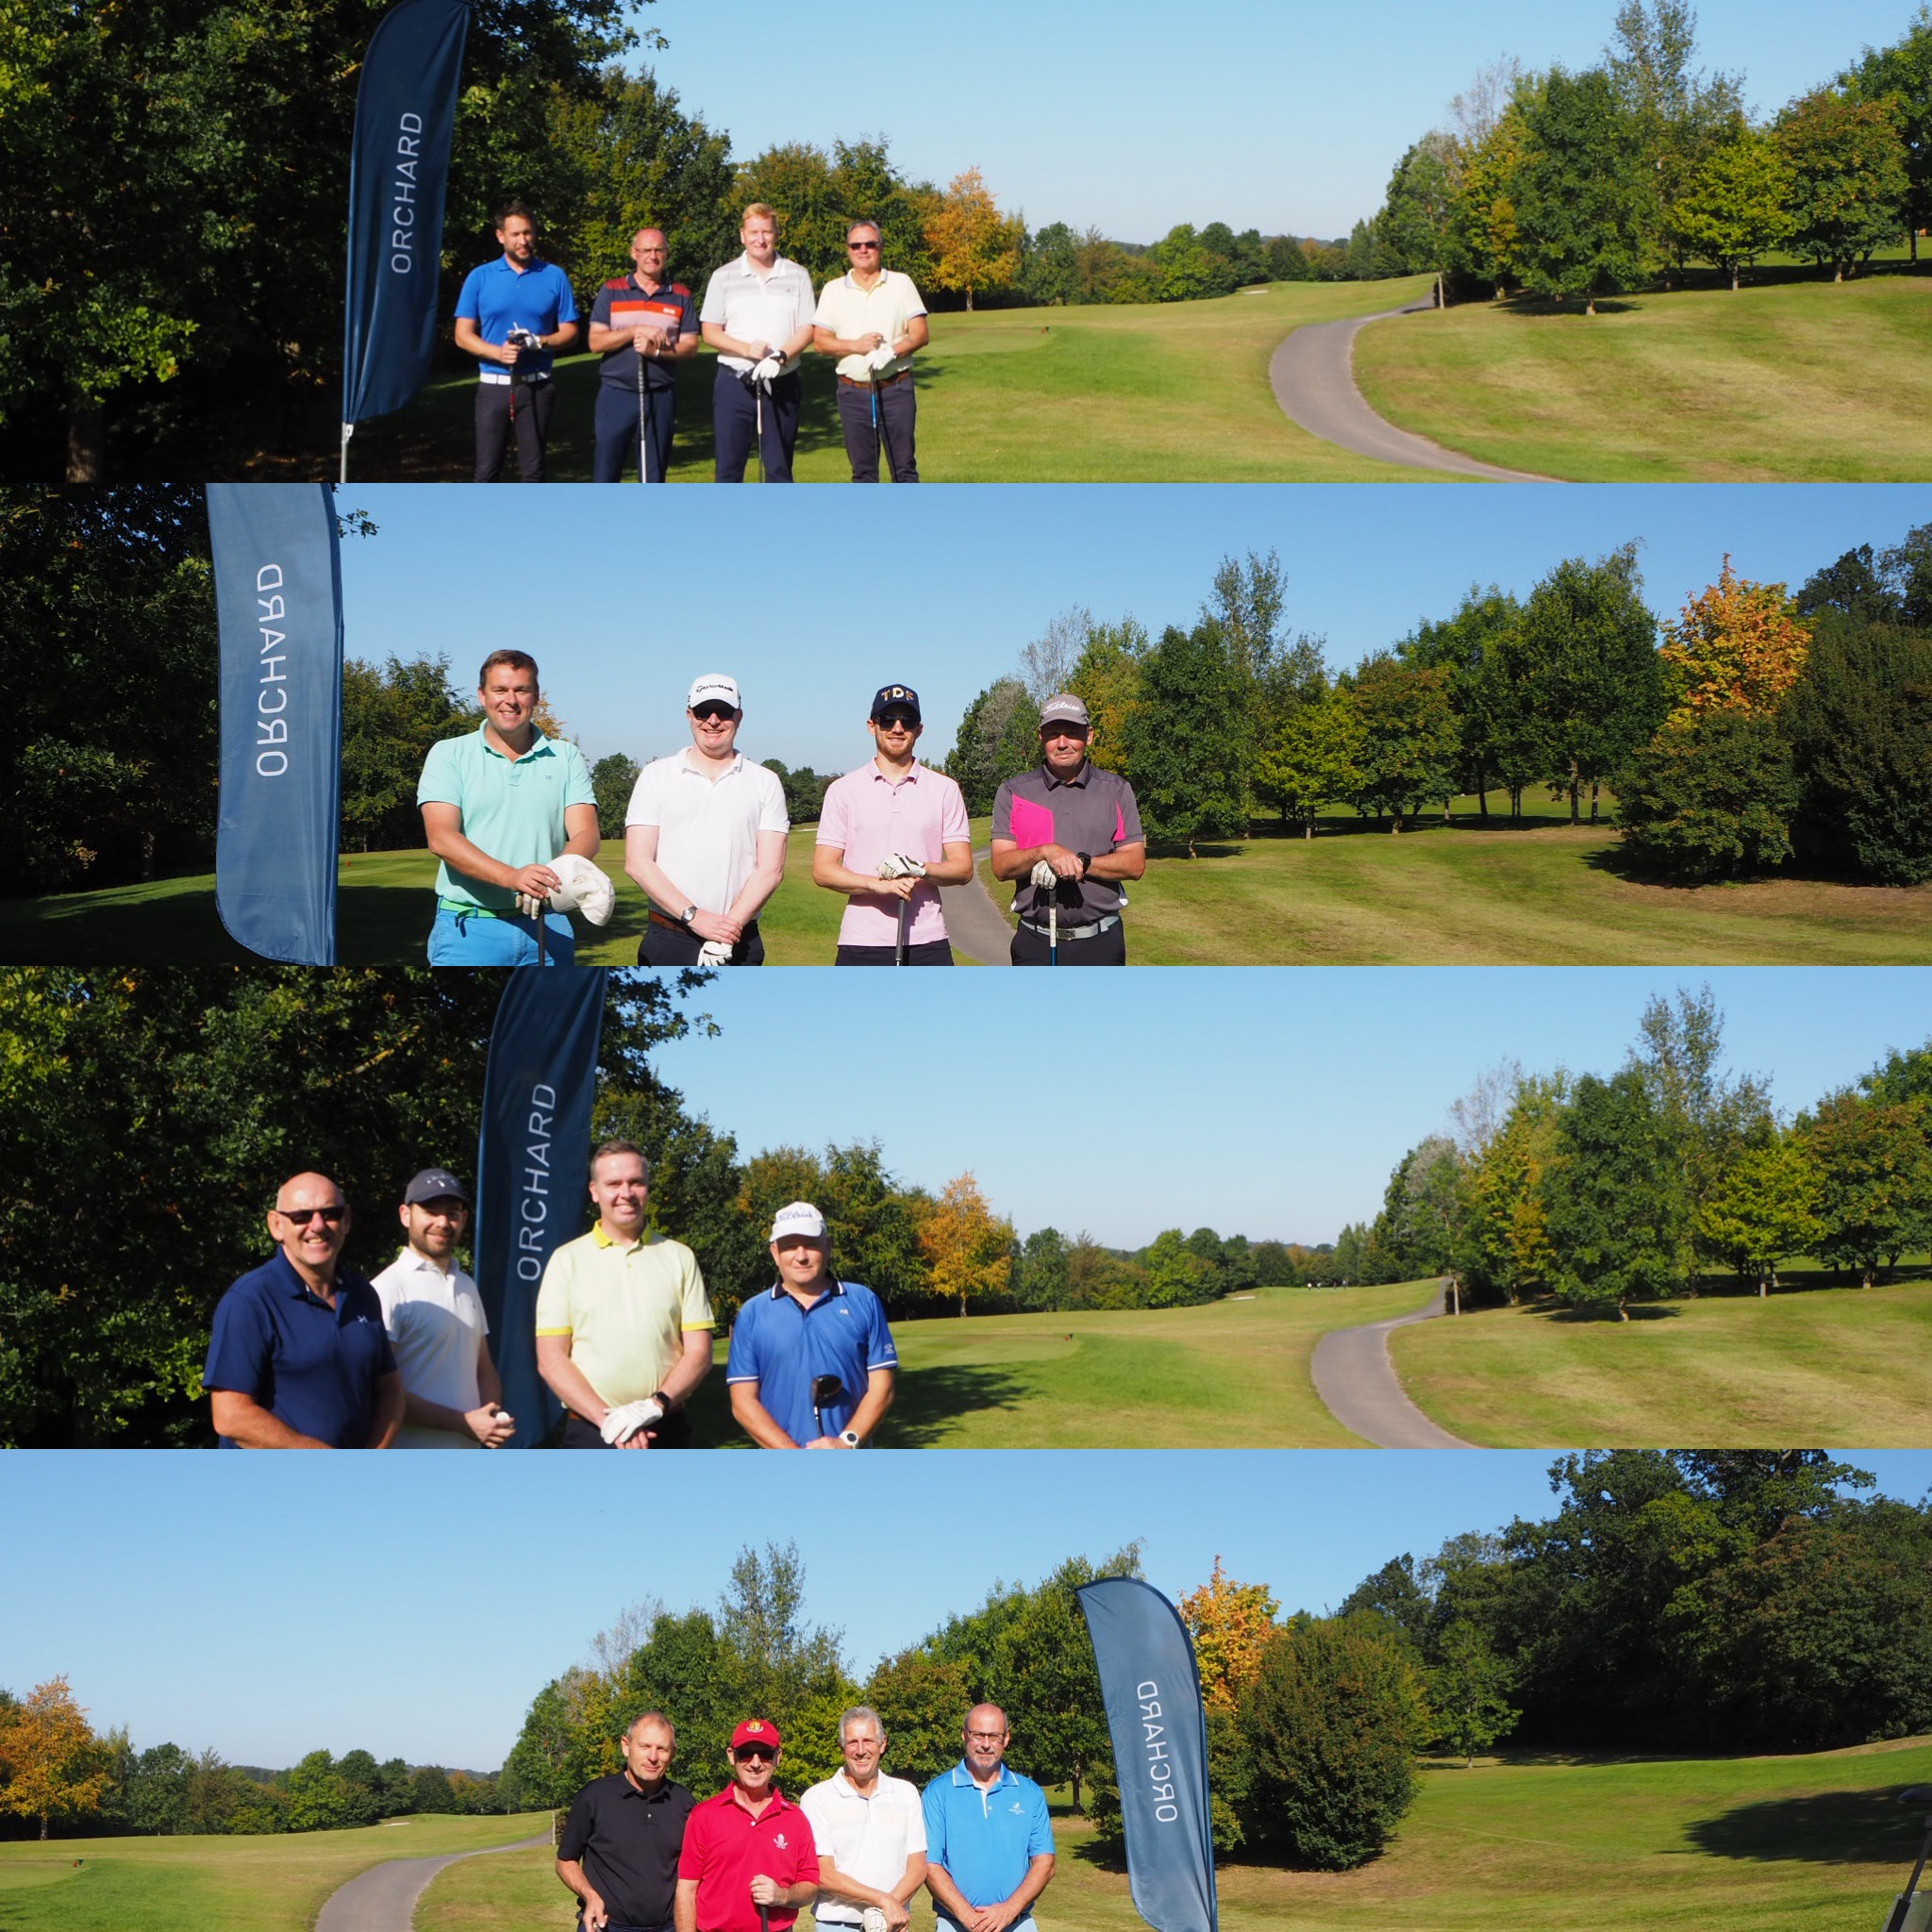 orchard group playing golf